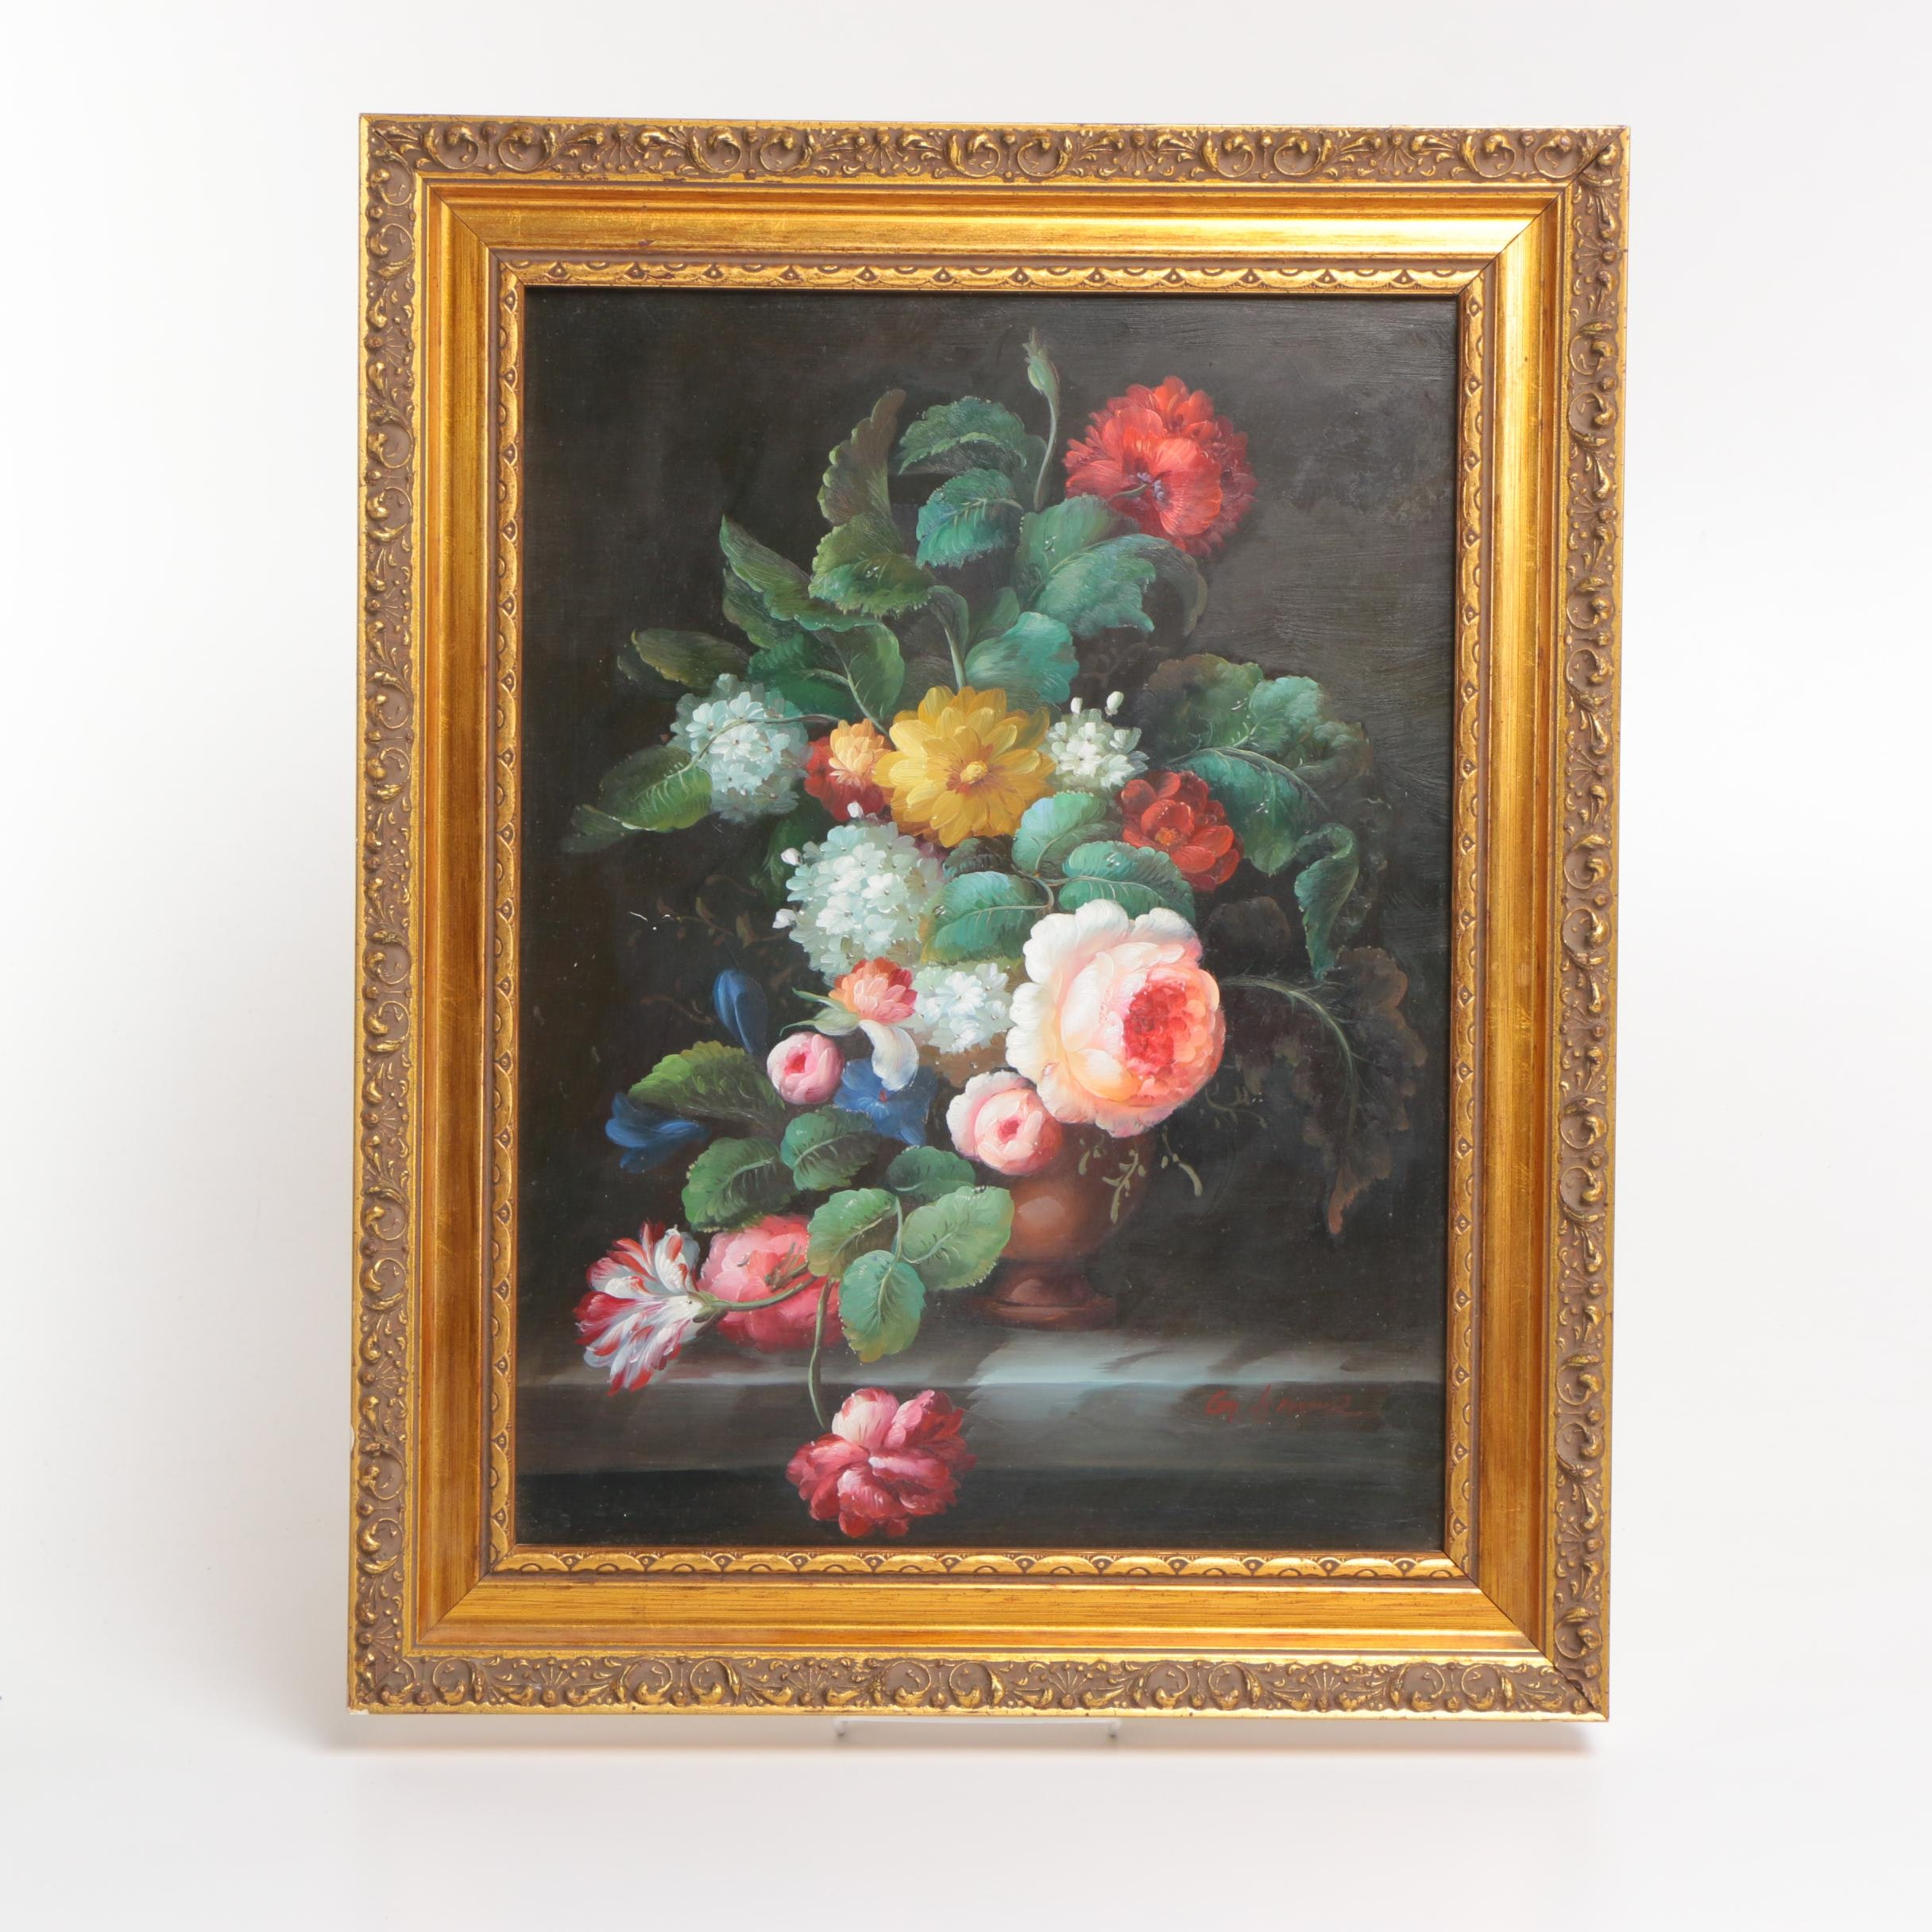 Oil on Canvas Board of a Floral Still Life